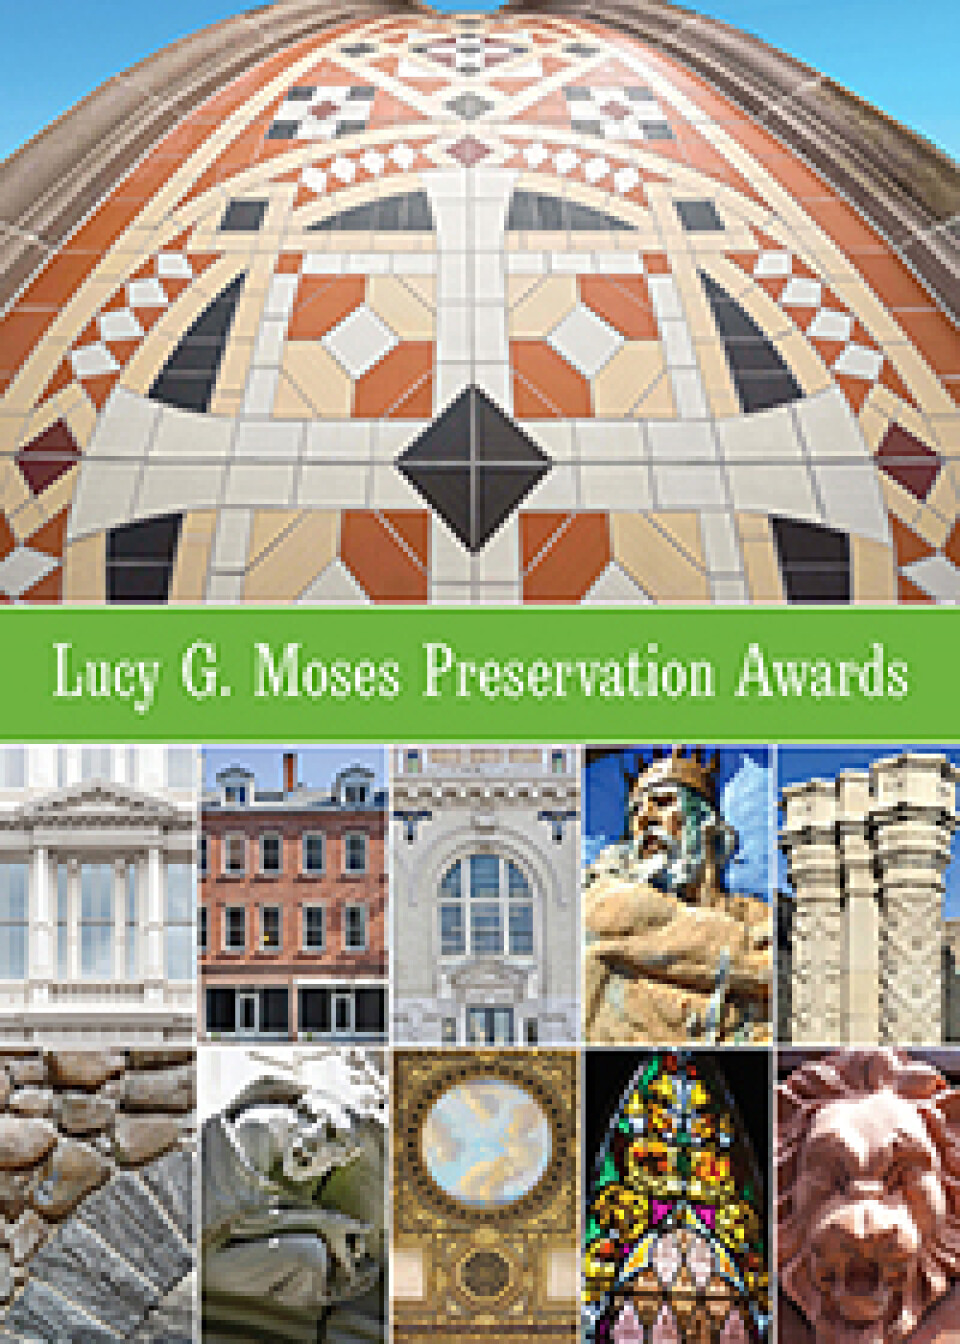 Lucy G. Moses Preservation Awards